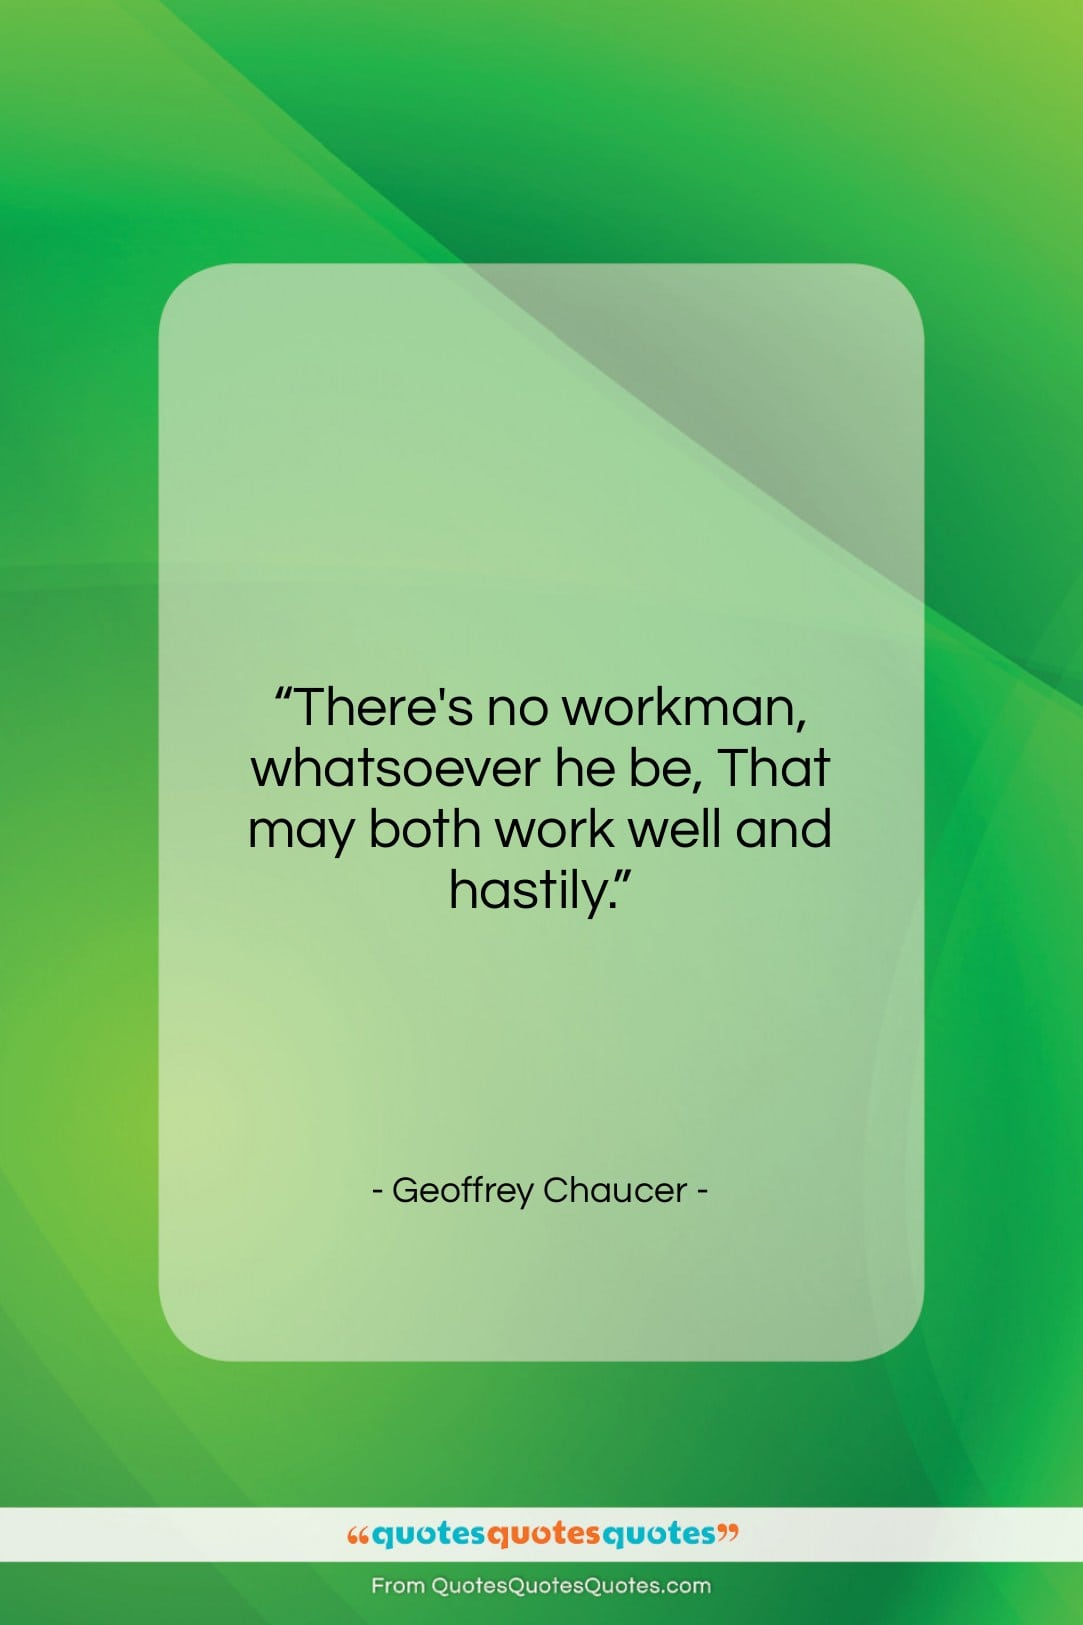 """Geoffrey Chaucer quote: """"There's no workman, whatsoever he be, That…""""- at QuotesQuotesQuotes.com"""